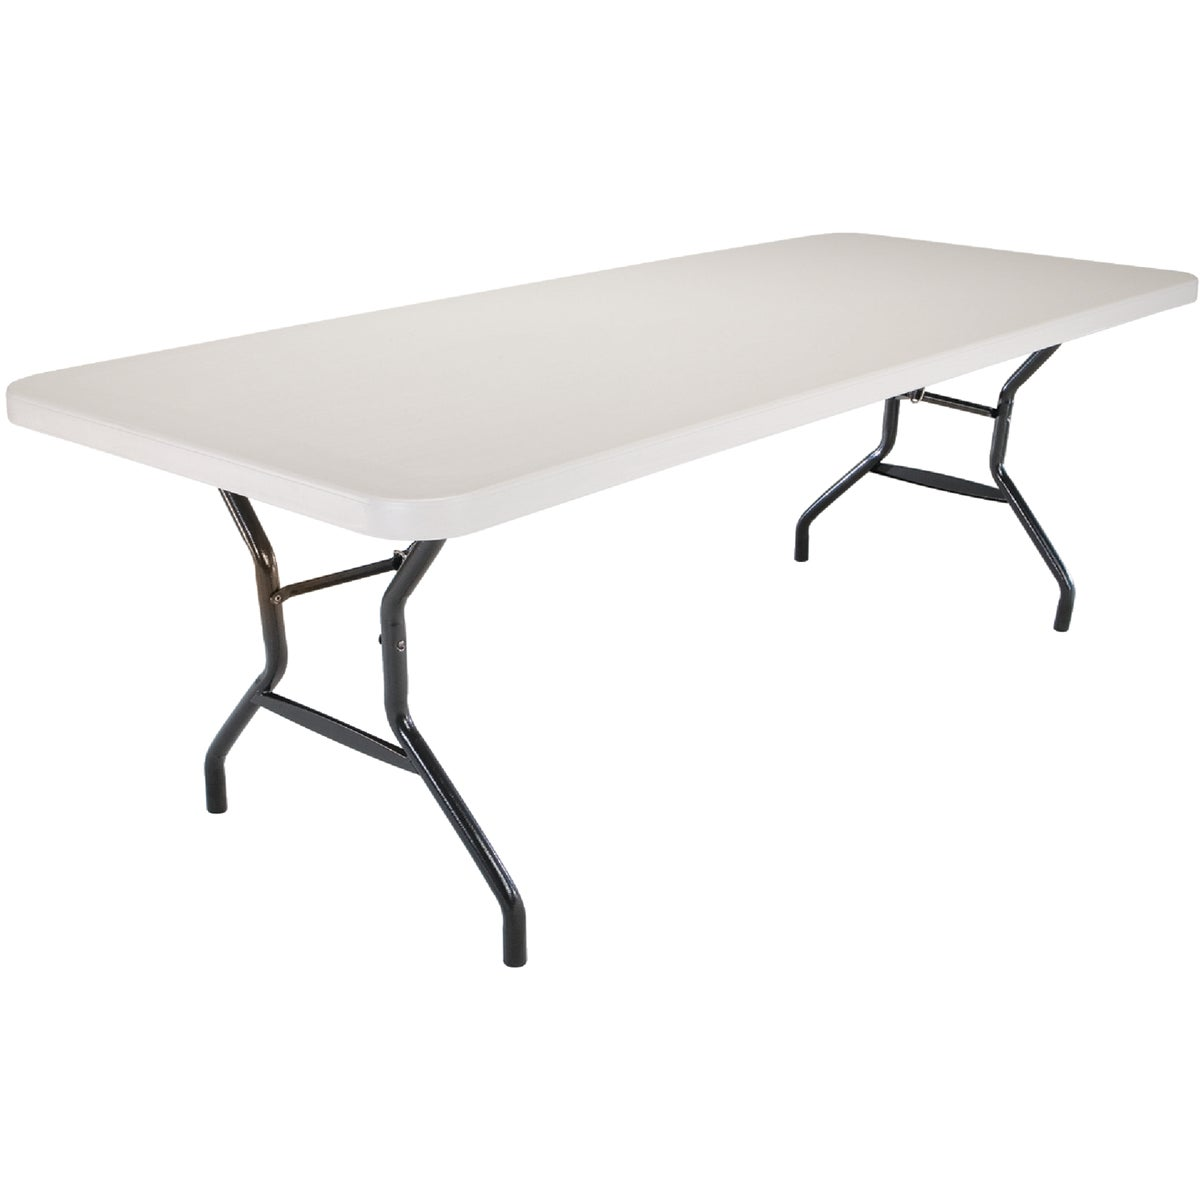 WHT 8' FOLDING TABLE